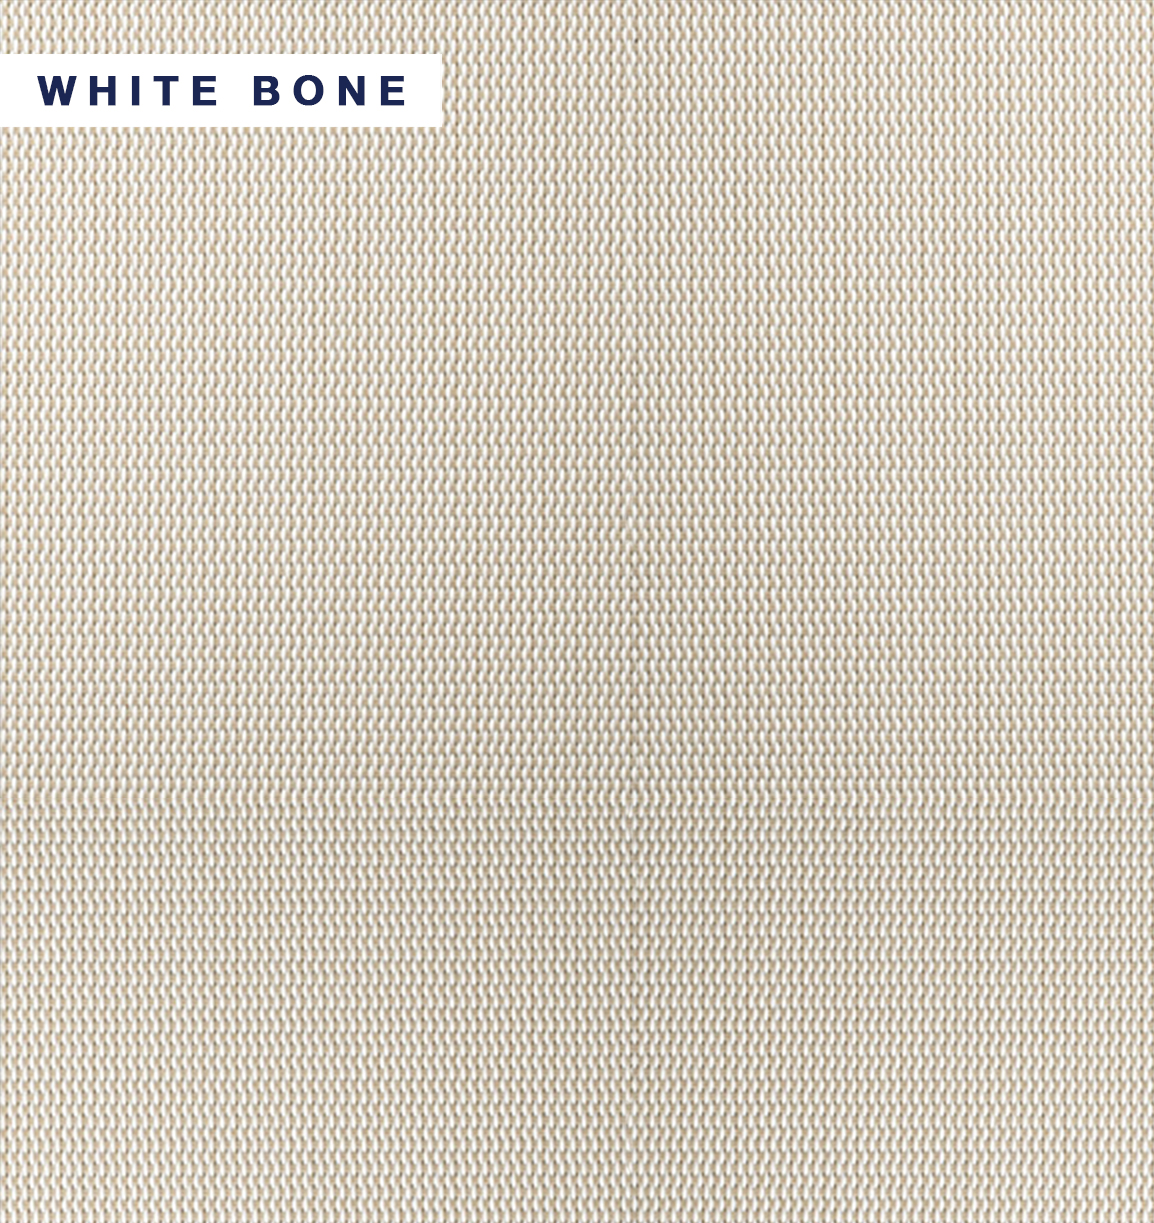 Vivid Shade - White Bone.jpg